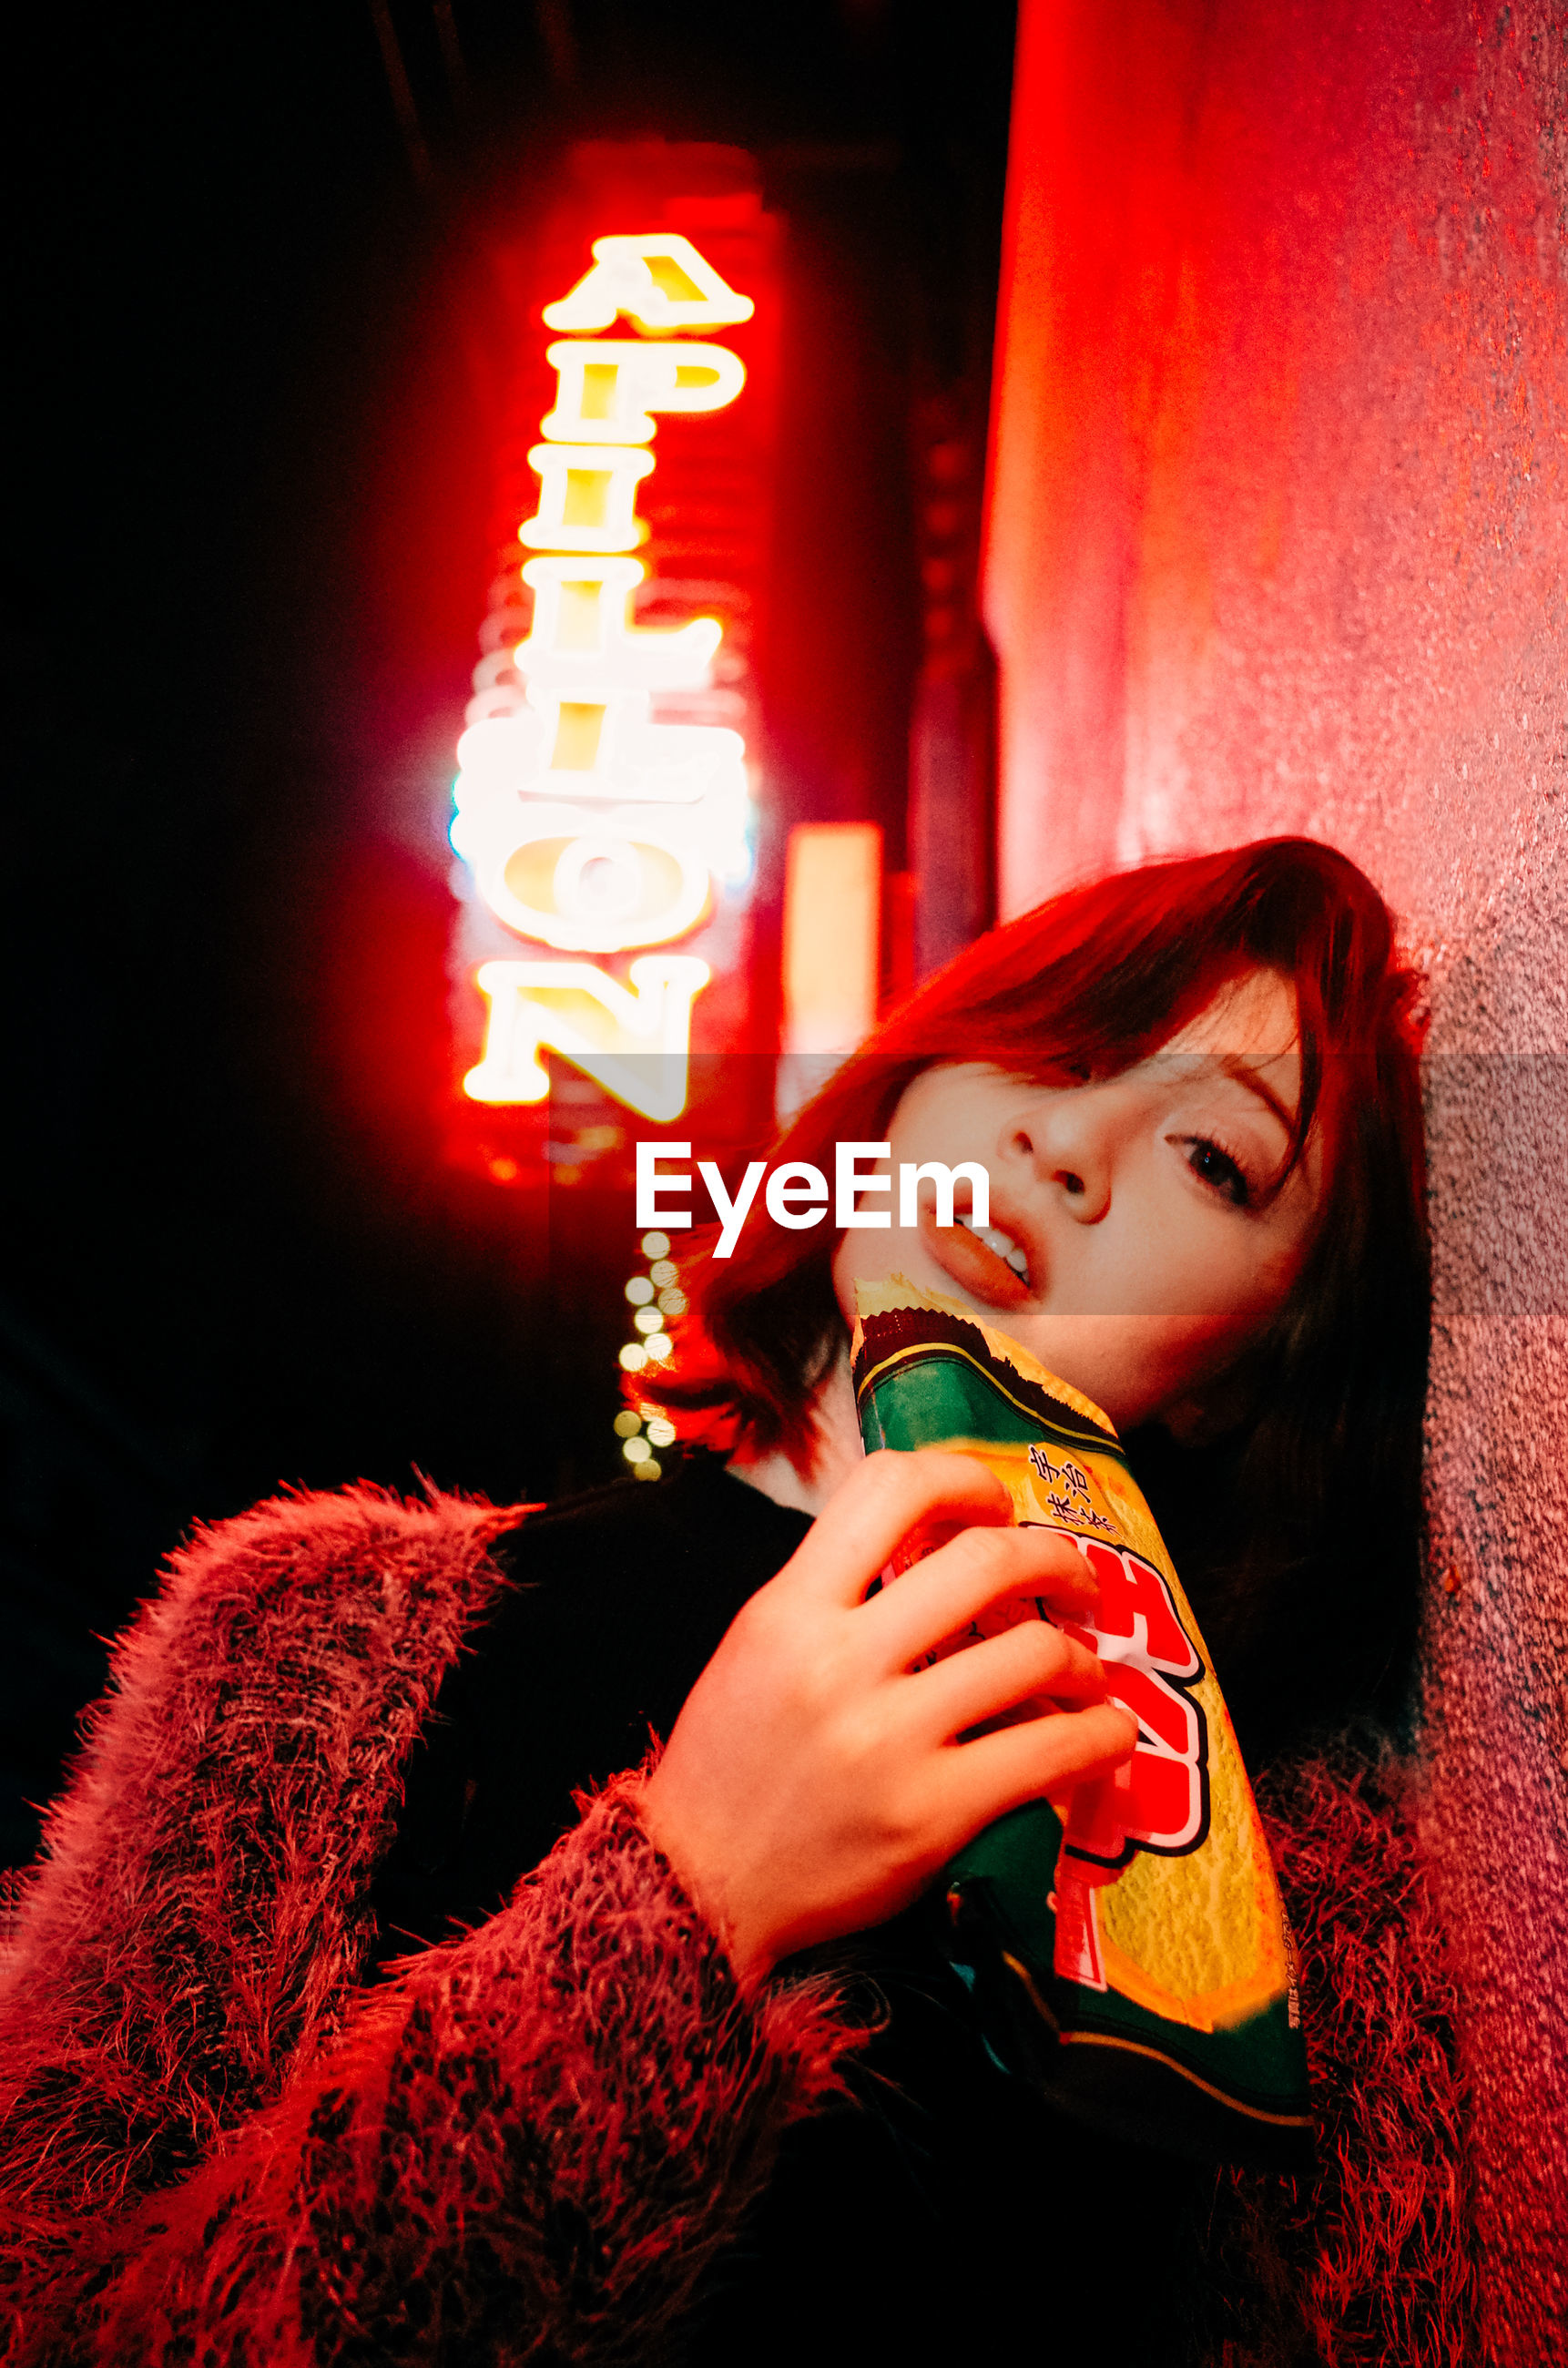 YOUNG WOMAN LOOKING AWAY AT ILLUMINATED RED NIGHT